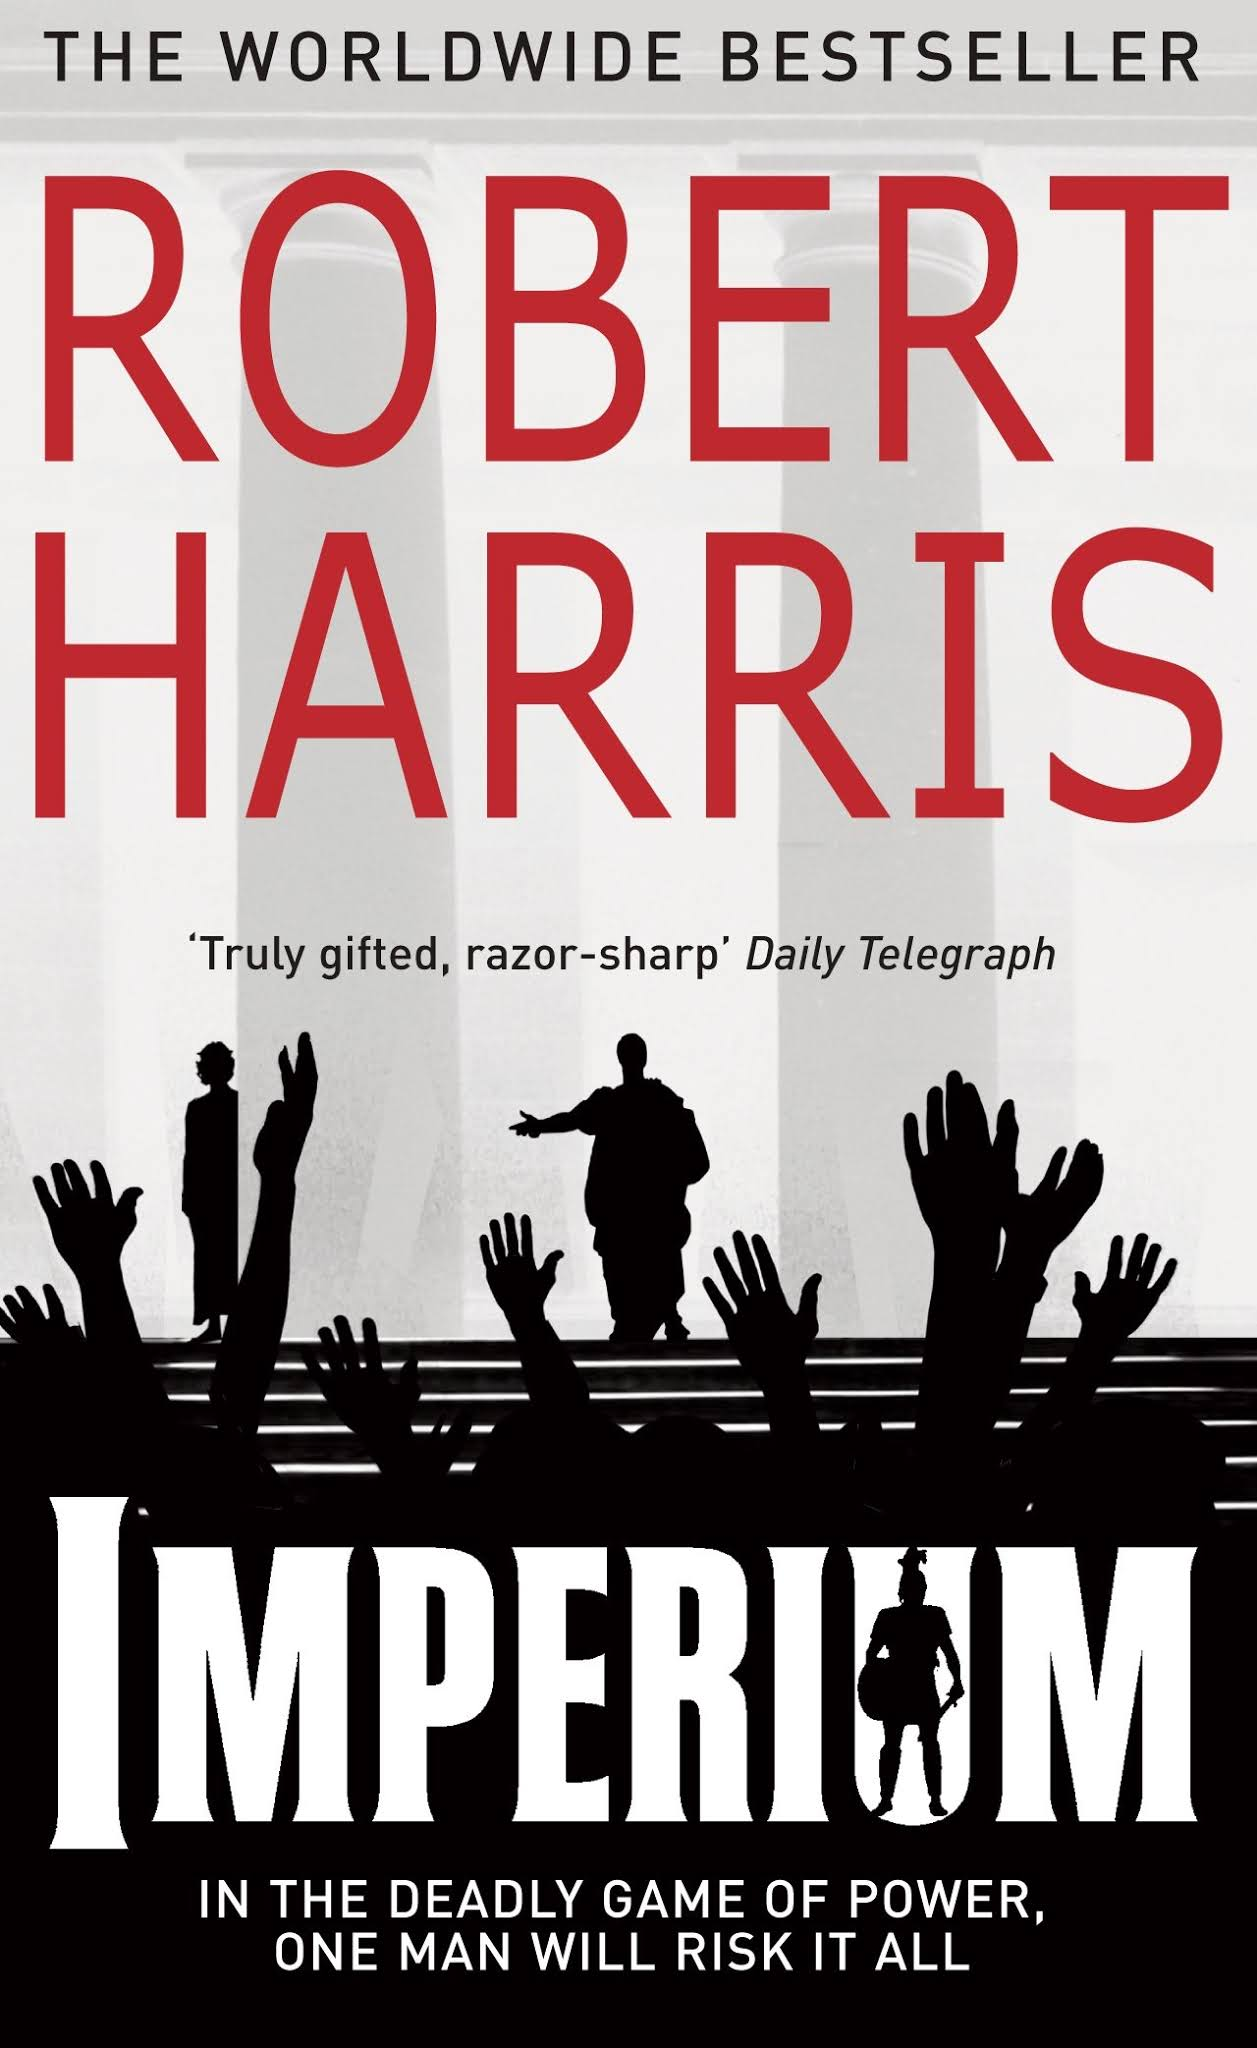 Book cover for Imperium by Robert Harris Imperium in the South Manchester, Chorlton, Cheadle, Fallowfield, Burnage, Levenshulme, Heaton Moor, Heaton Mersey, Heaton Norris, Heaton Chapel, Northenden, and Didsbury book group